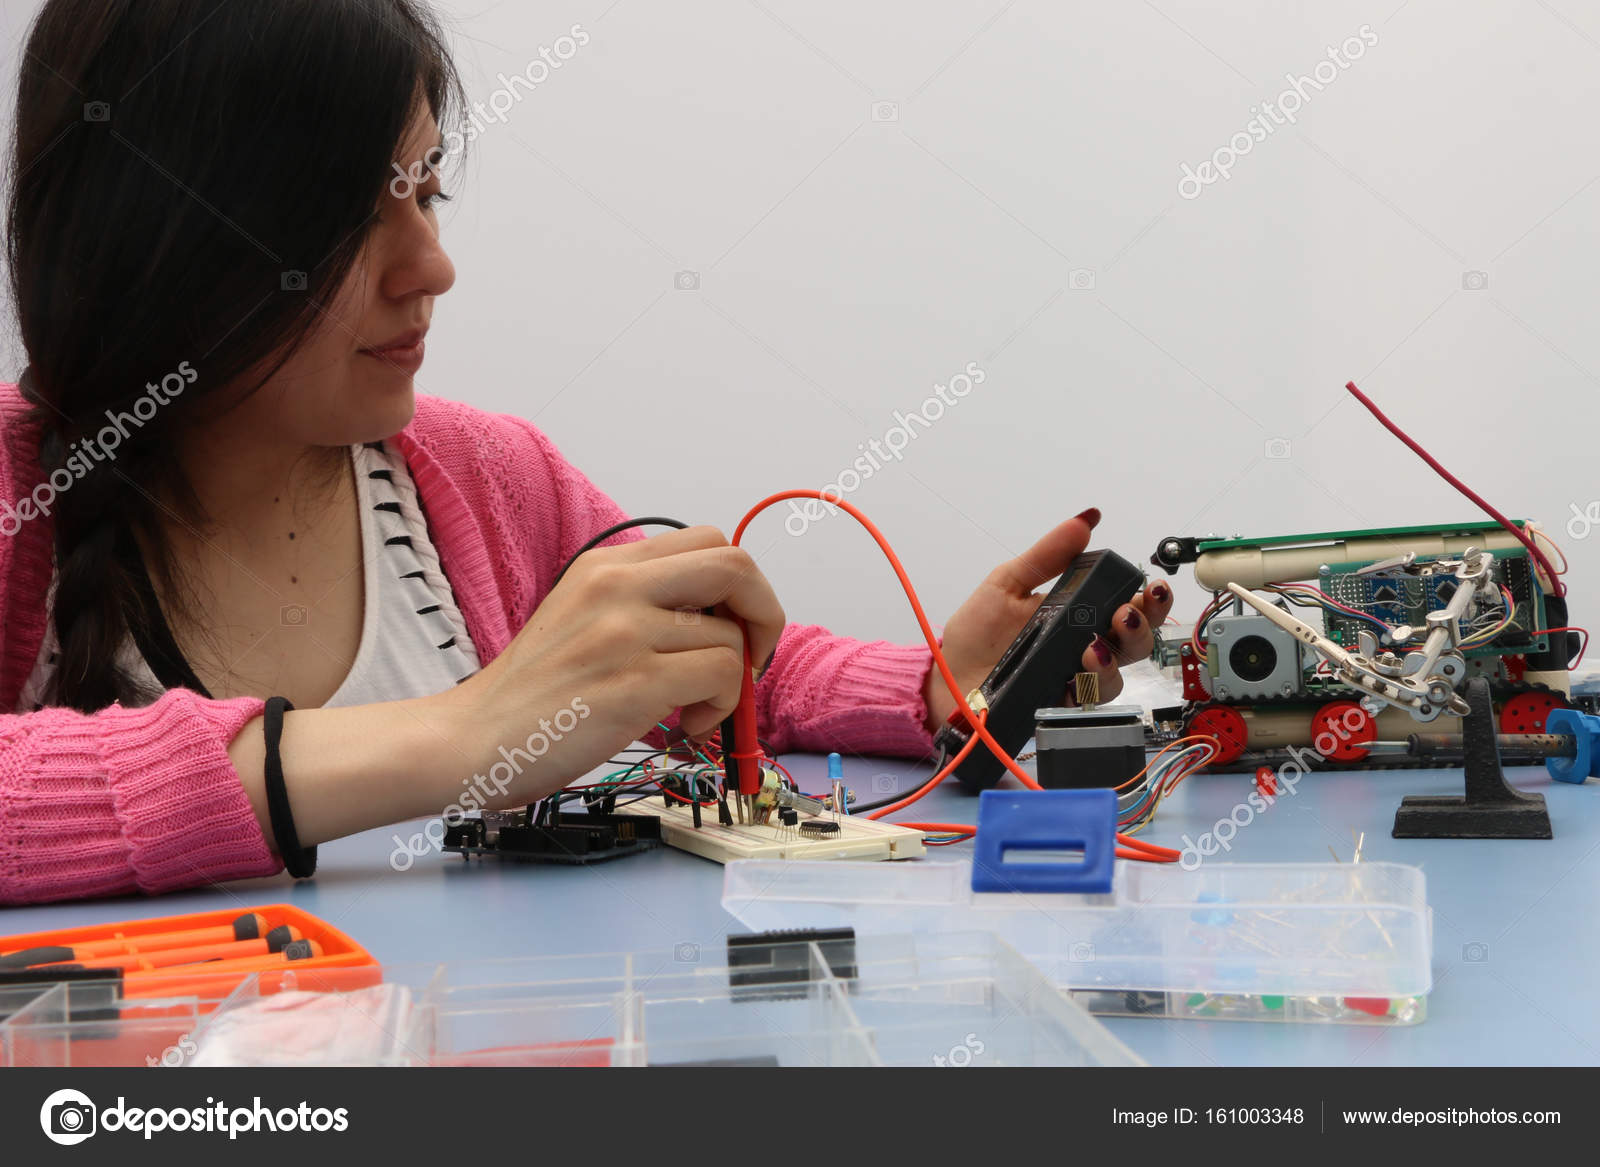 Technology Student Learning To Prototype Electronic Circuits For Circuit Design Robotics Is All Stock Photo